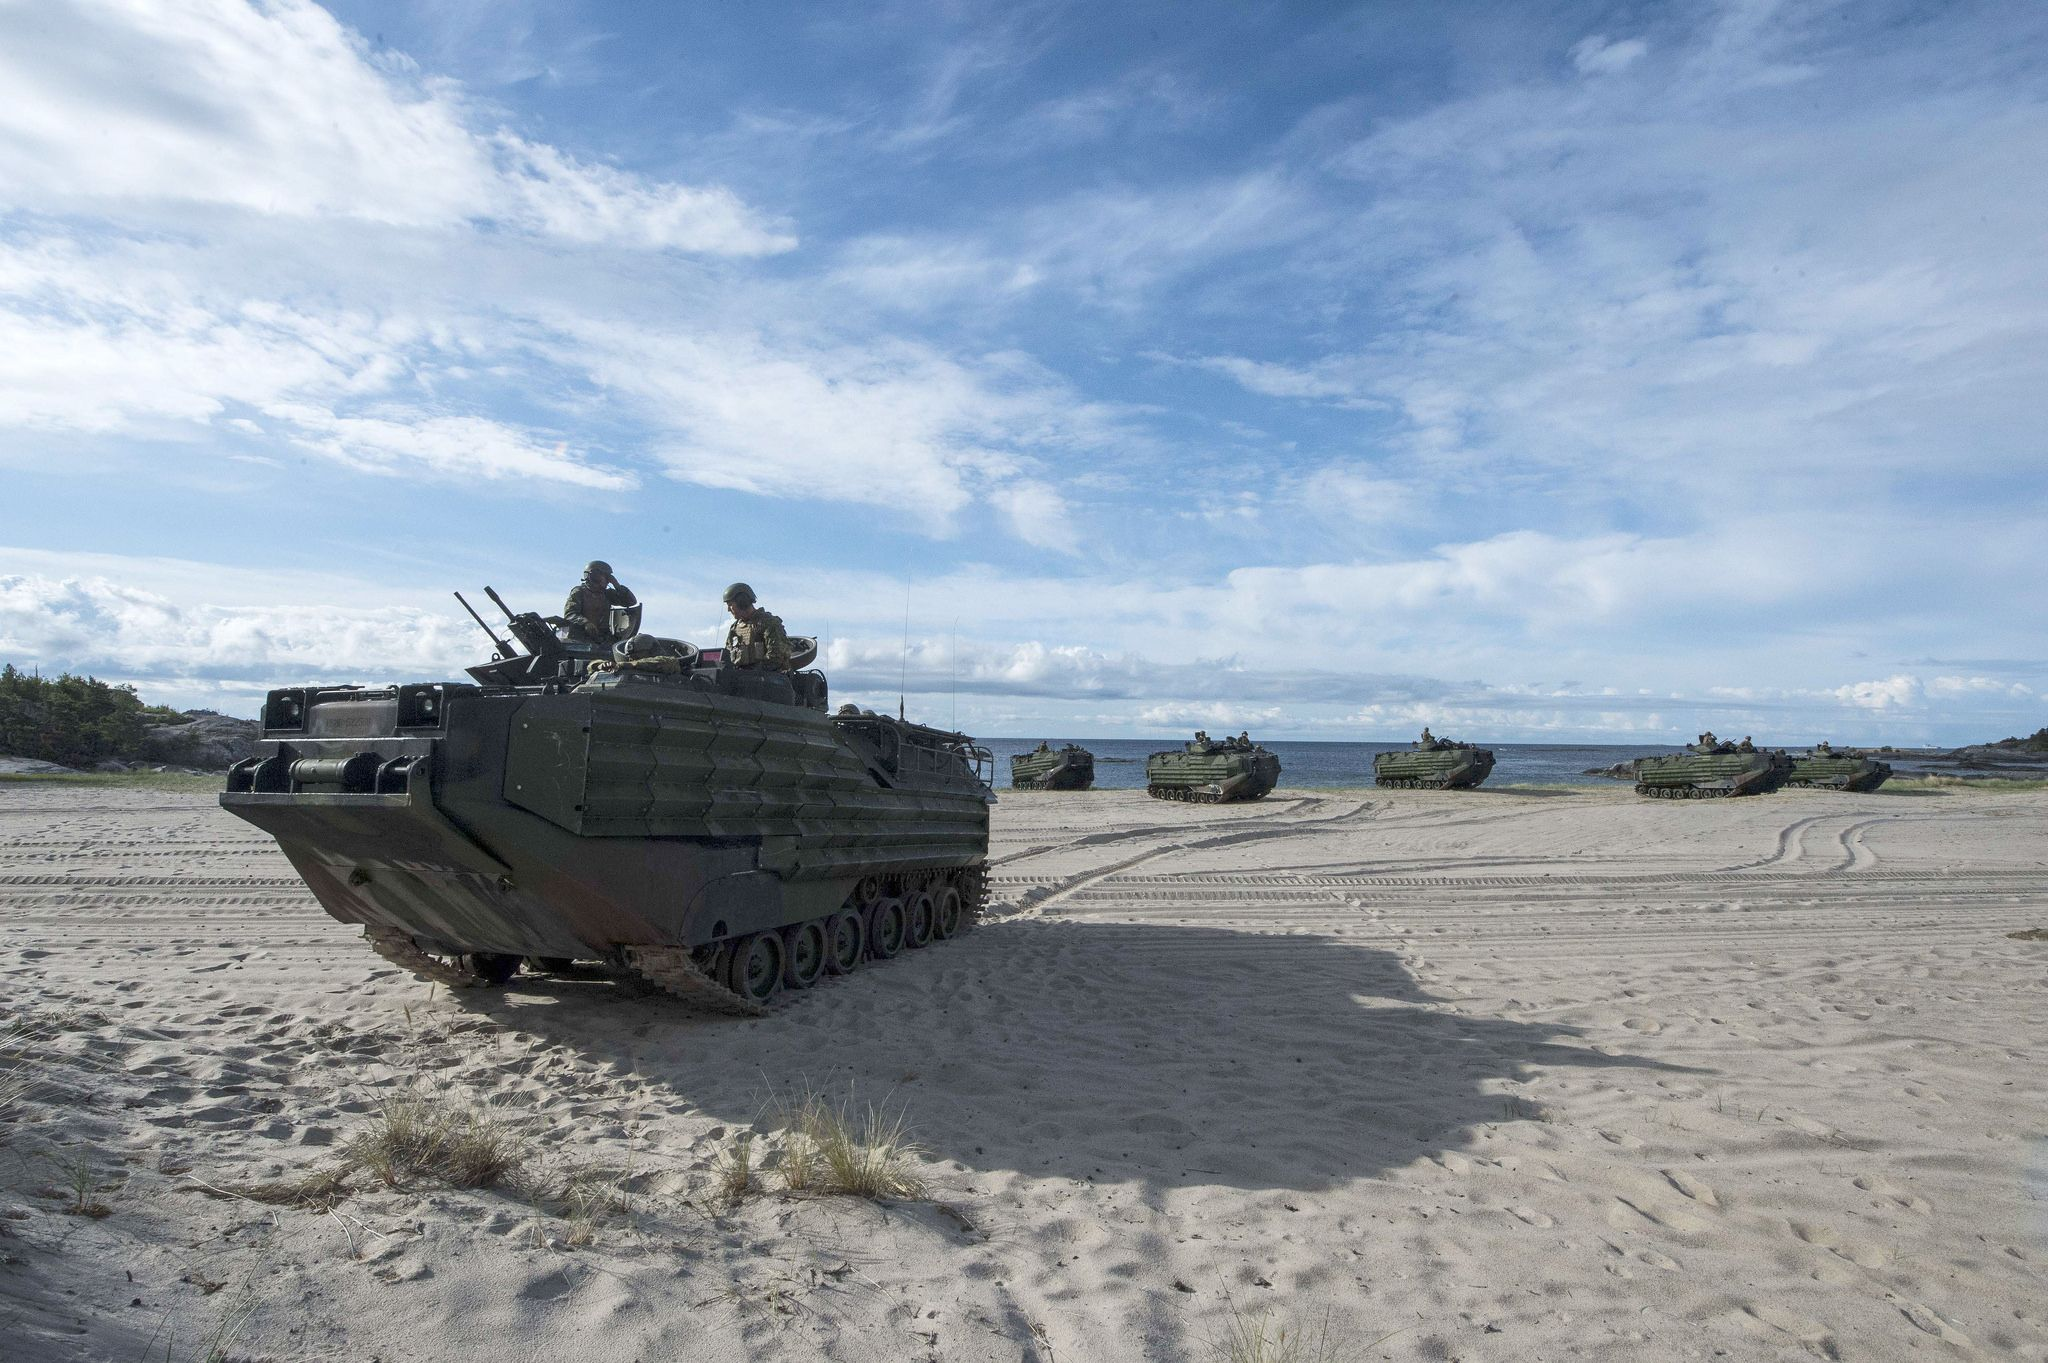 UTO, Sweden (June 10, 2016) Marines with the 3rd Battalion, 8th Marines deployed from Camp Lejune, North Carolina, come ashore during an amphibious assault landing exercise on the island of Uto in of support BALTOPS 2016, June 10. BALTOPS is an annual recurring multinational exercise designed to improve interoperability, enhance flexibility, and demonstrate the resolve of allied and partner nations to defend the Baltic region. (U.S. Navy Mass Comm Spec  2nd Class Brittney Cannady)